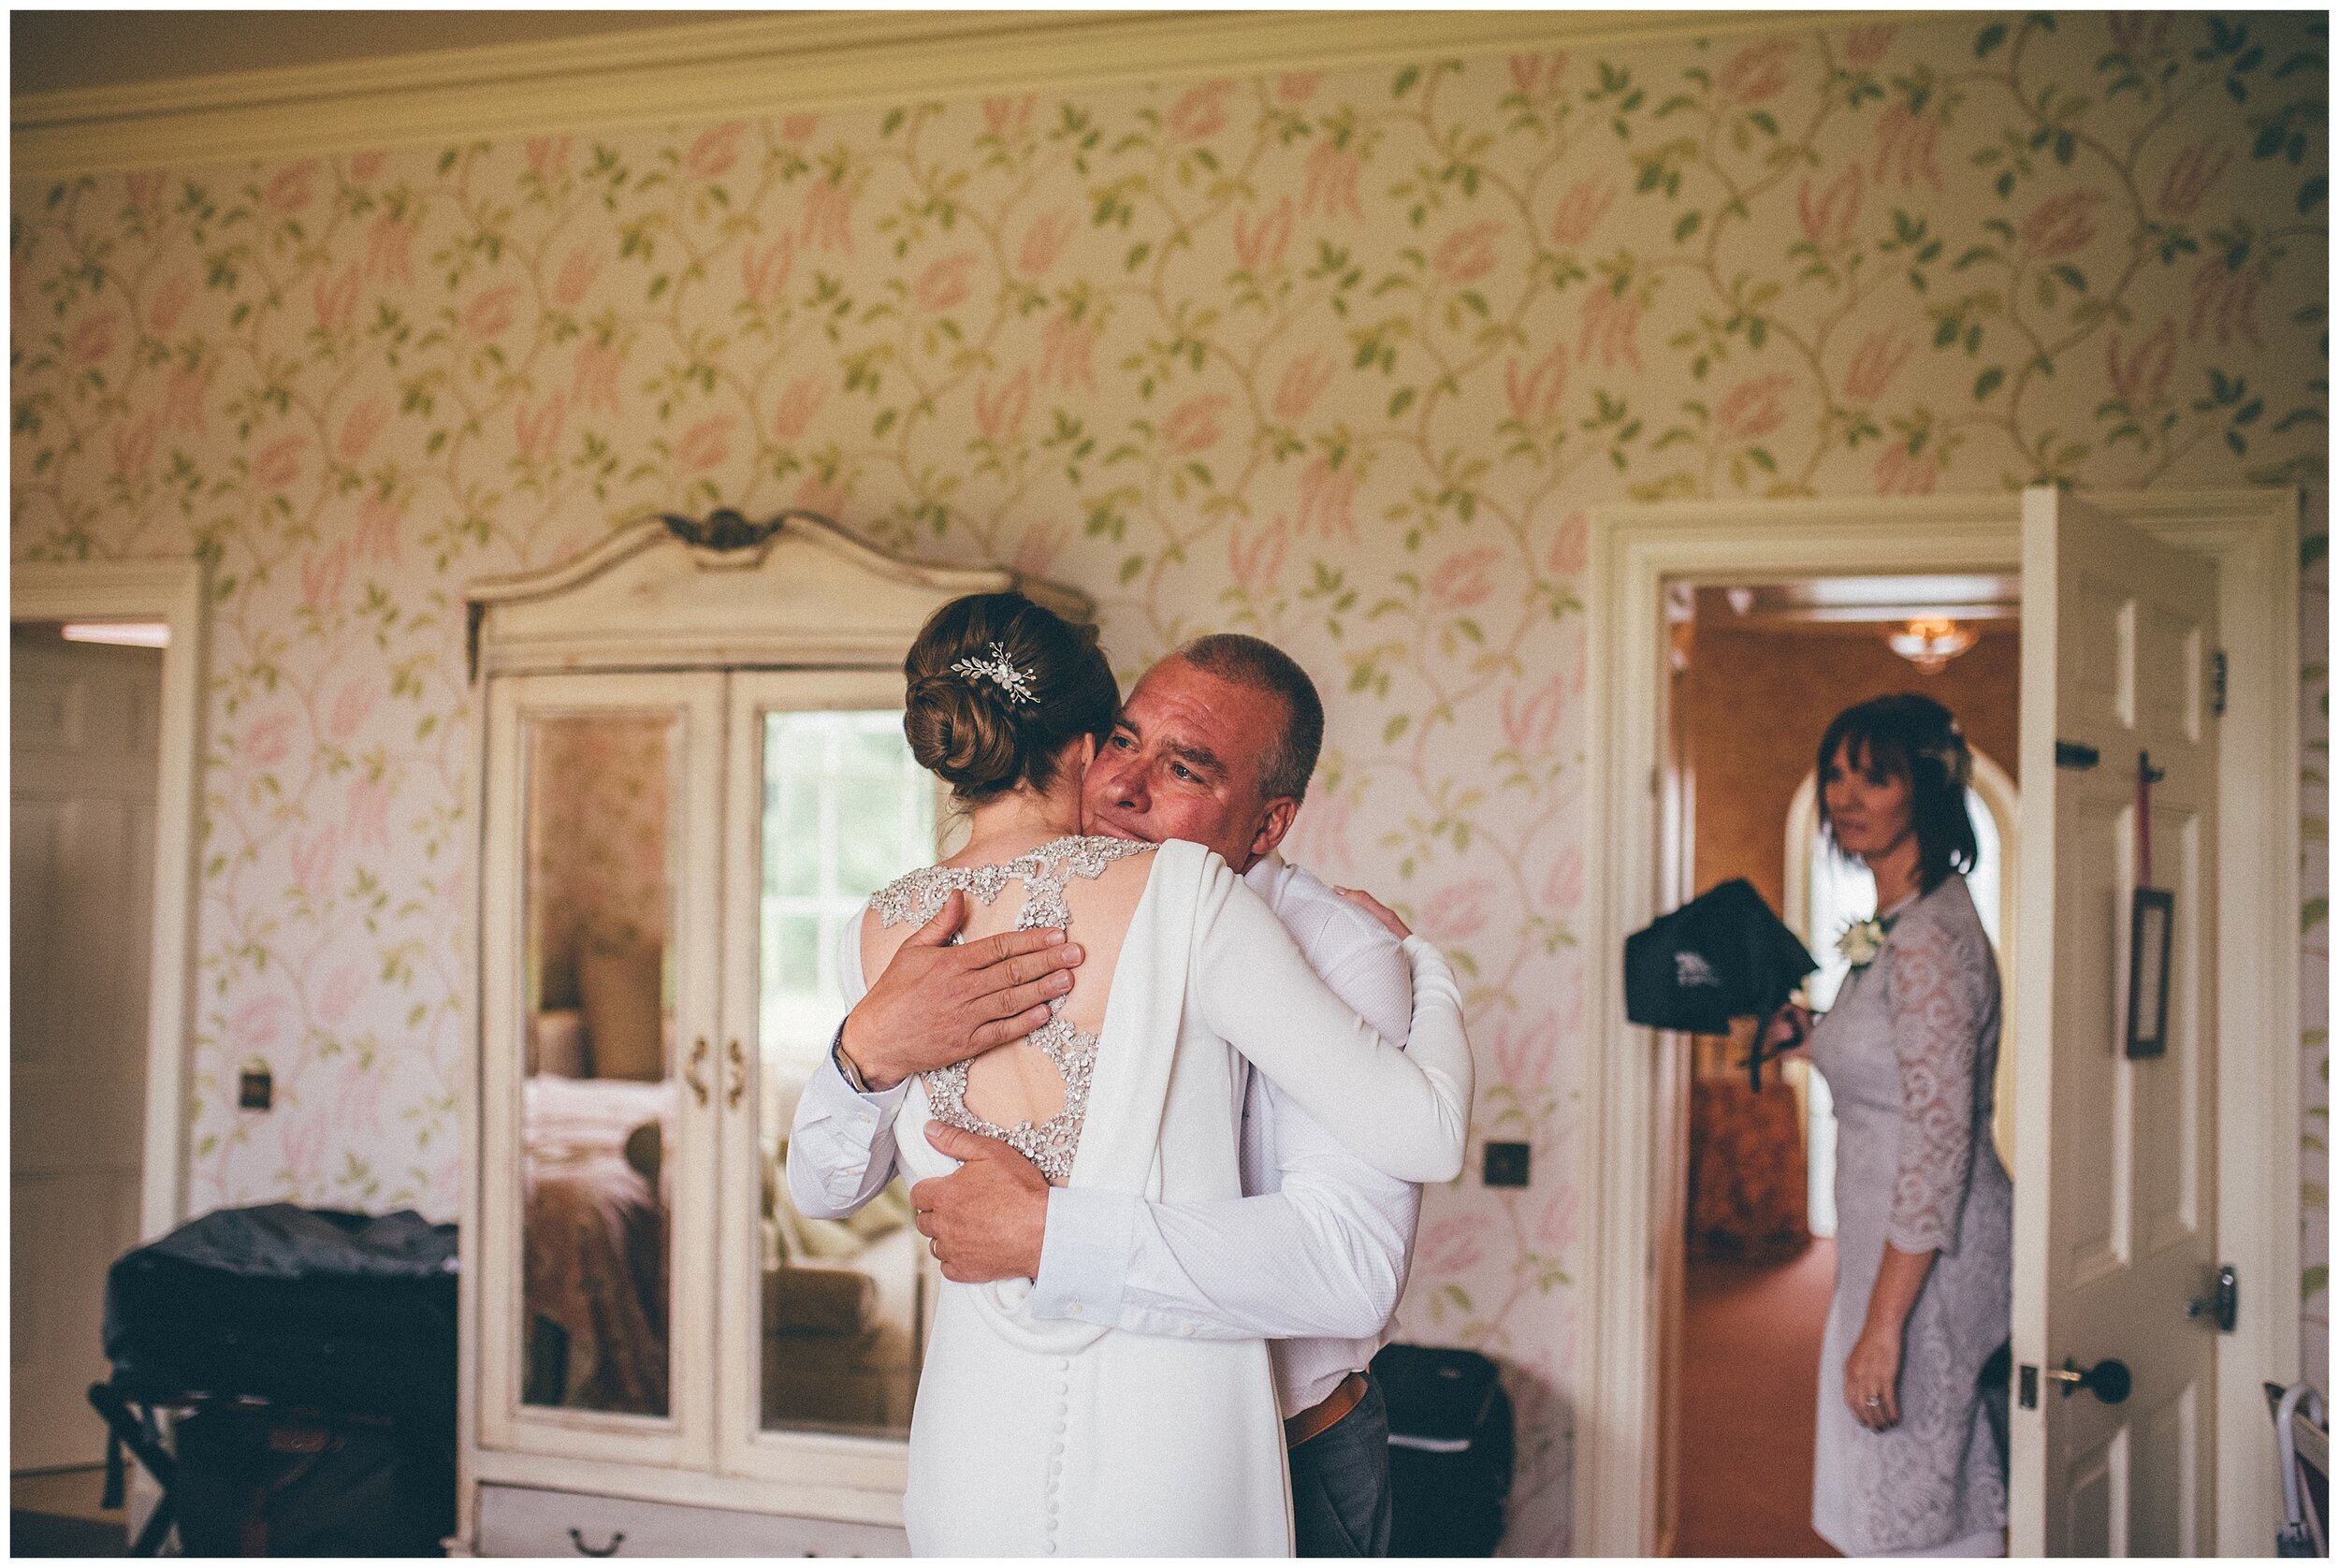 Bride's dad hugs her as he sees her as a bride for the first time.